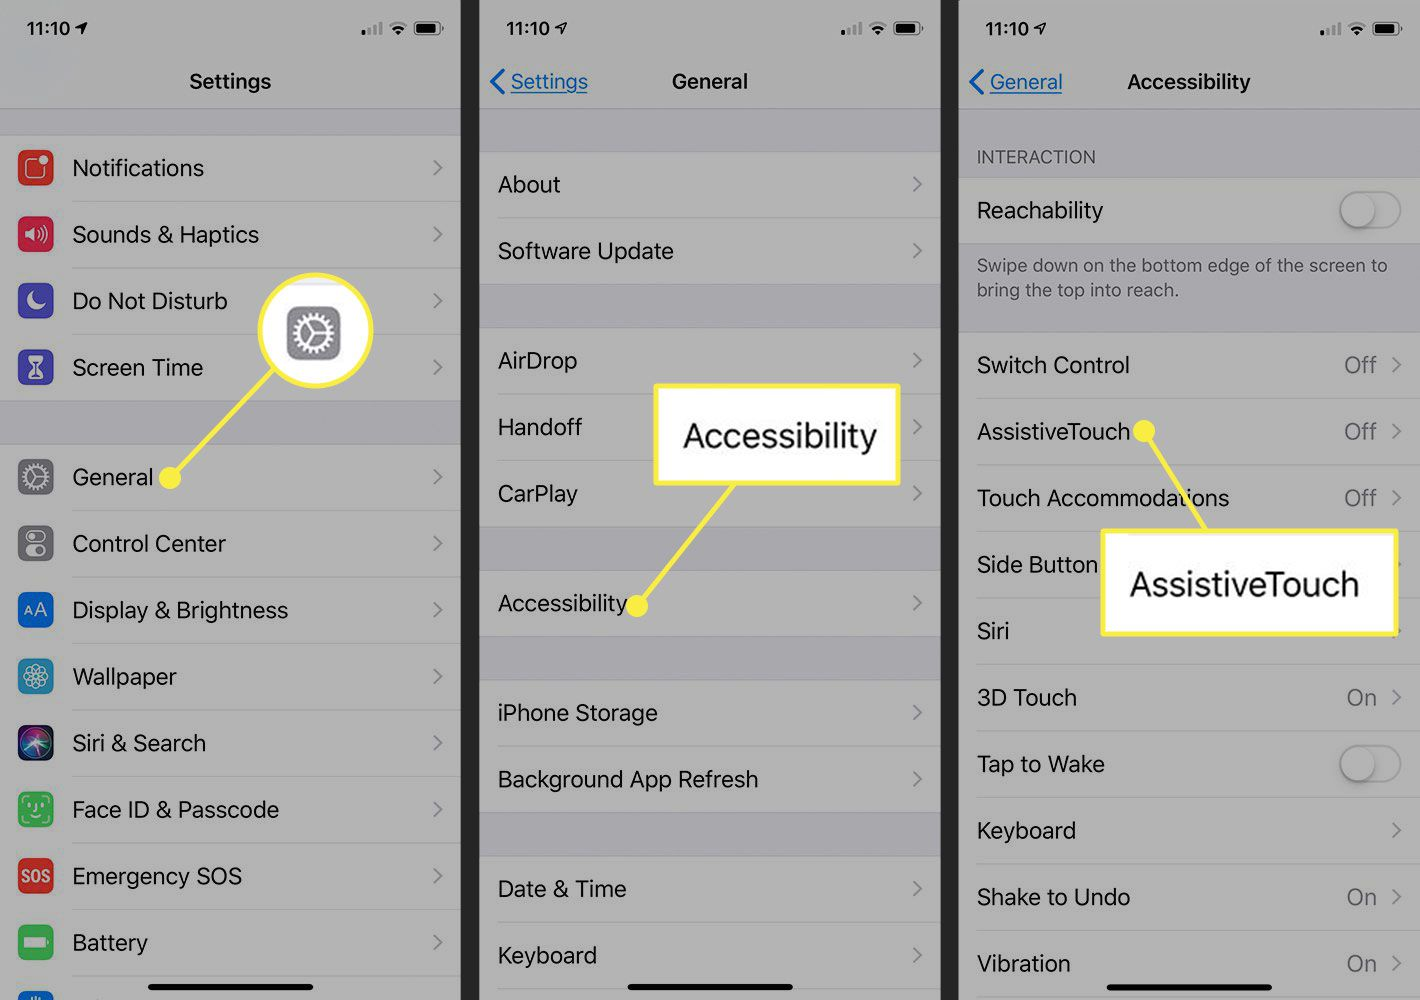 Screenshots of iPhone settings with the General, Accessibility, and AssistiveTouch options highlighted